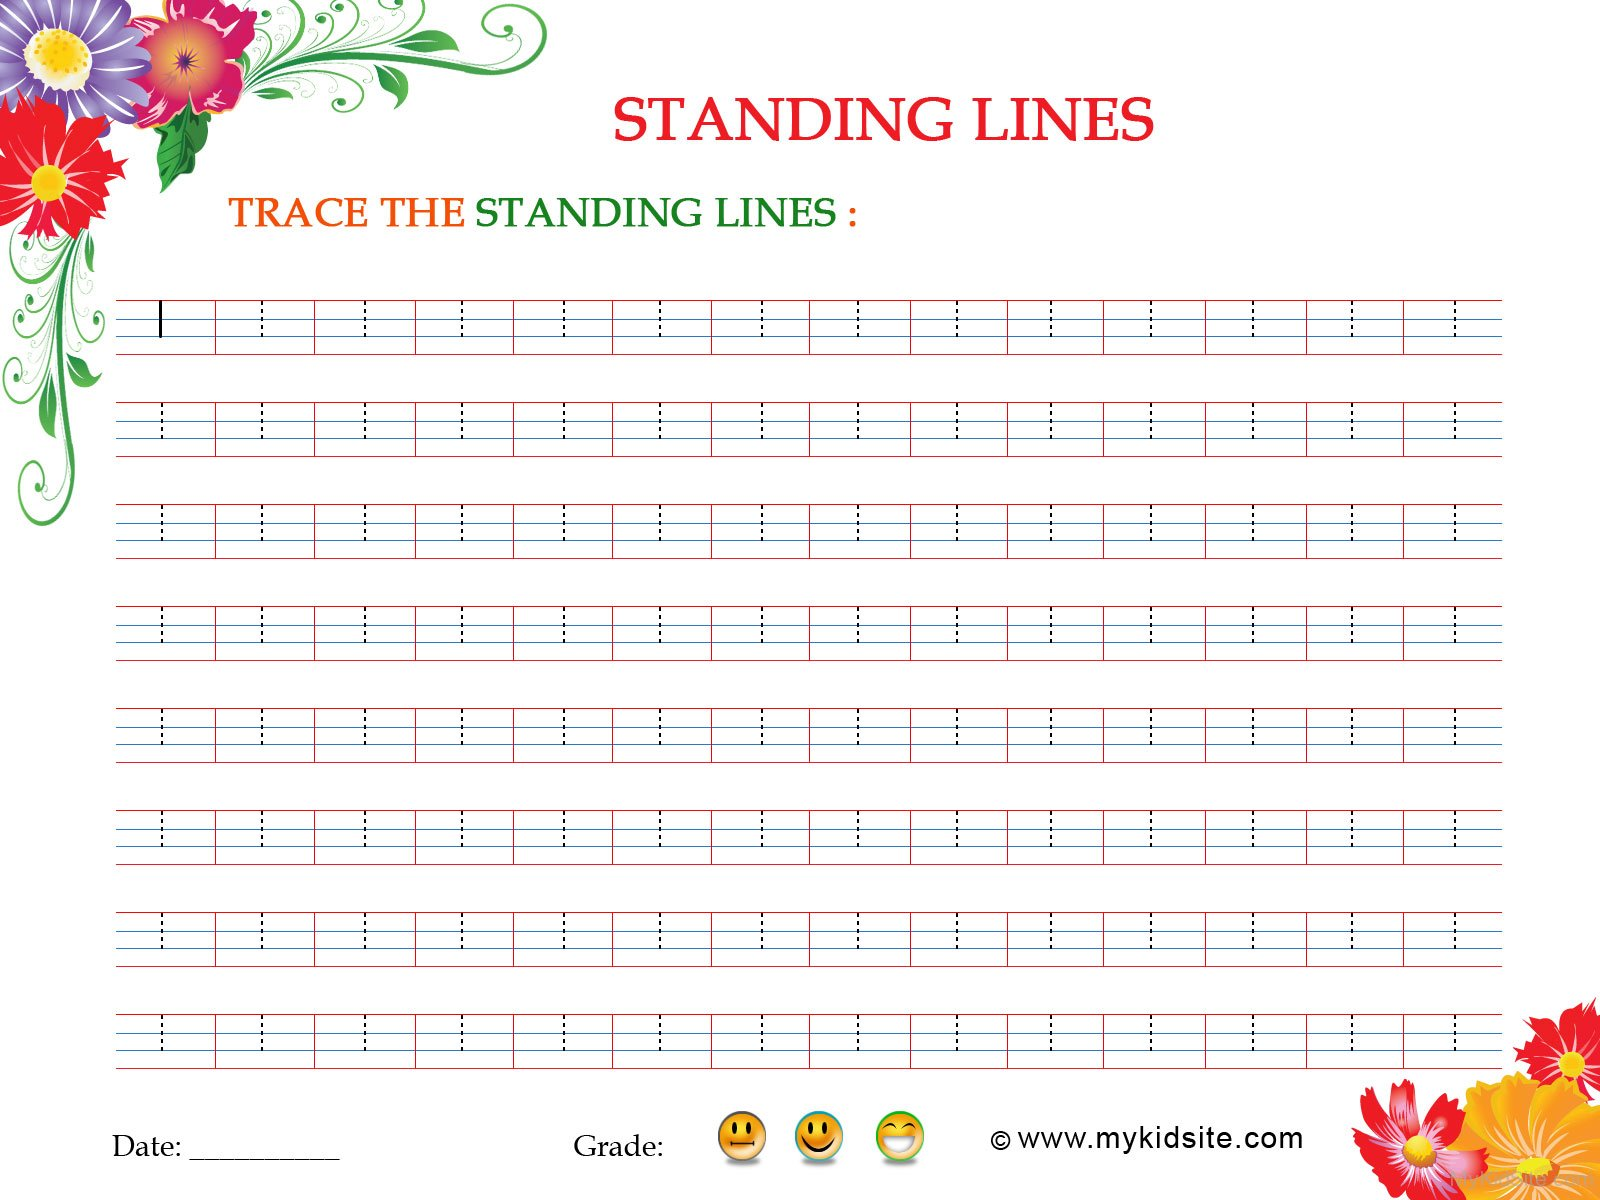 Worksheet Line Tracing Worksheets Worksheet Fun